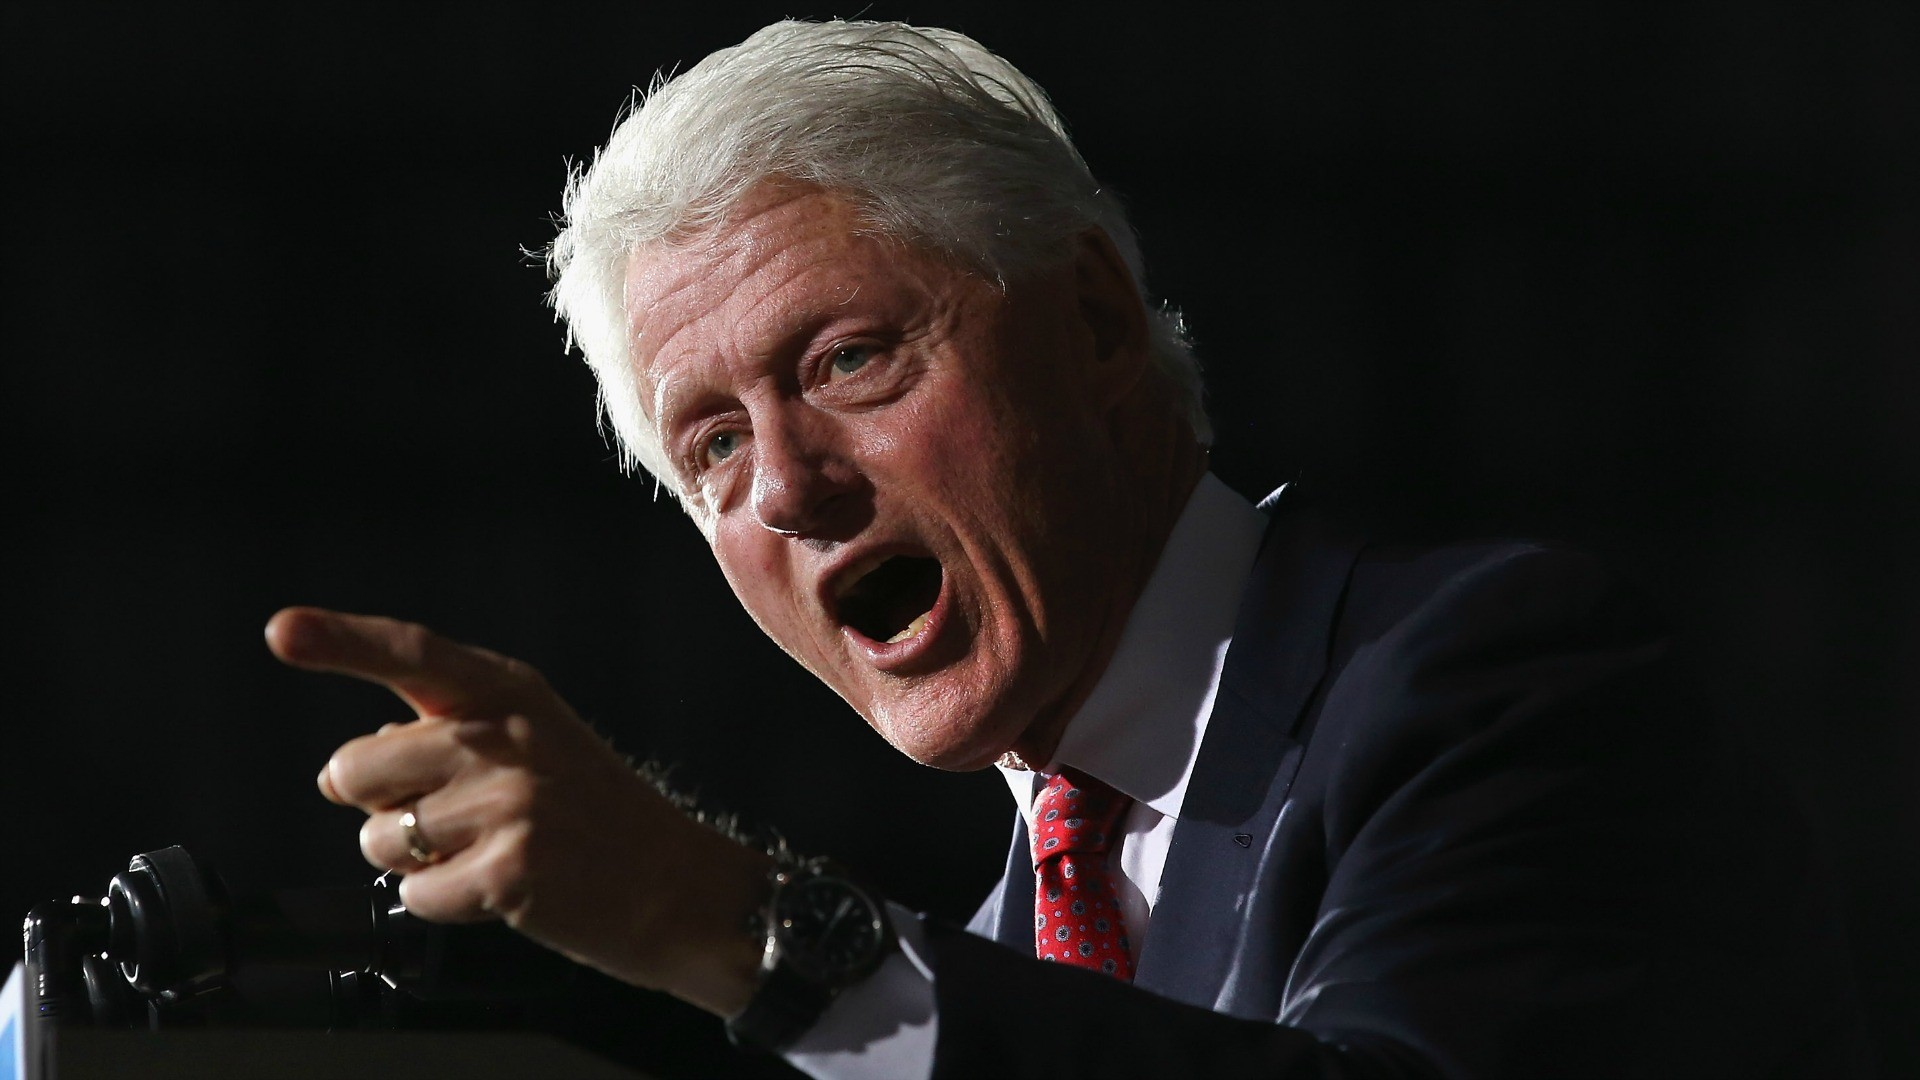 Full 100% Quality HD Images: Bill Clinton Wallpapers, px